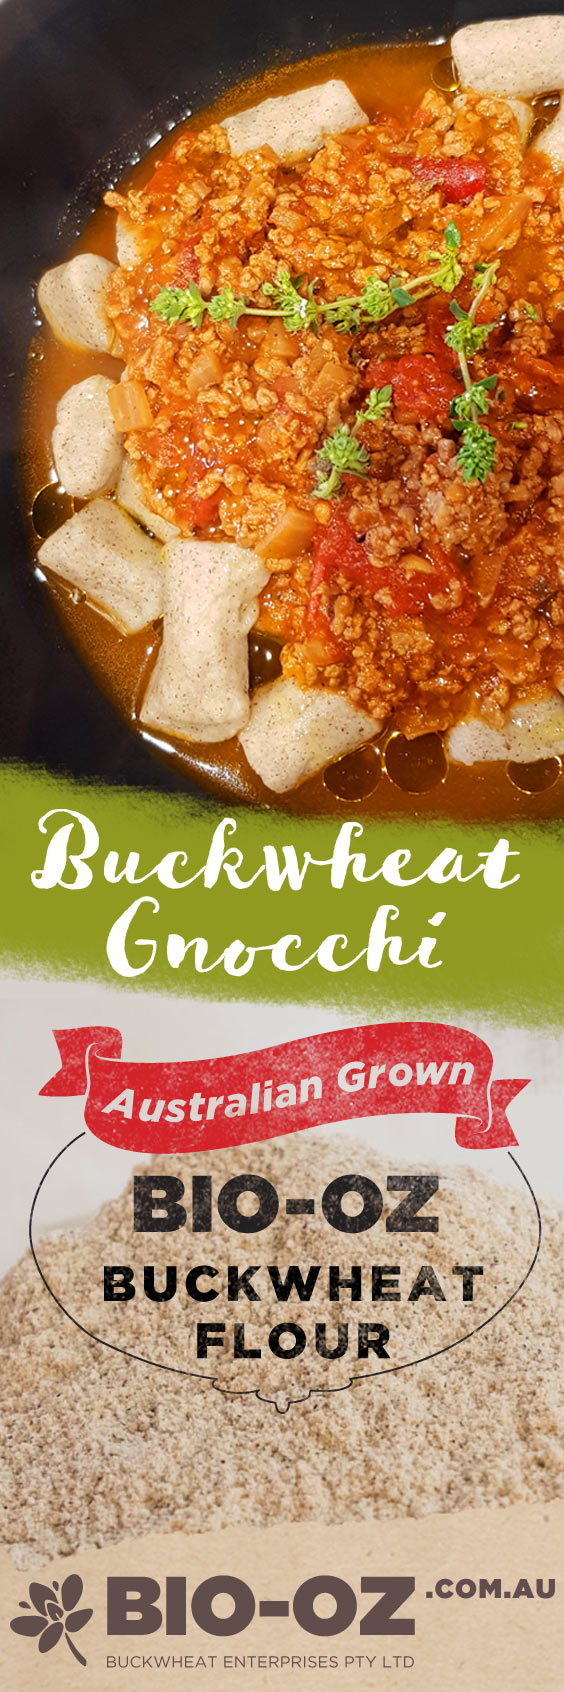 Gluten free Gnocchi made with Bio-Oz Buckwheat